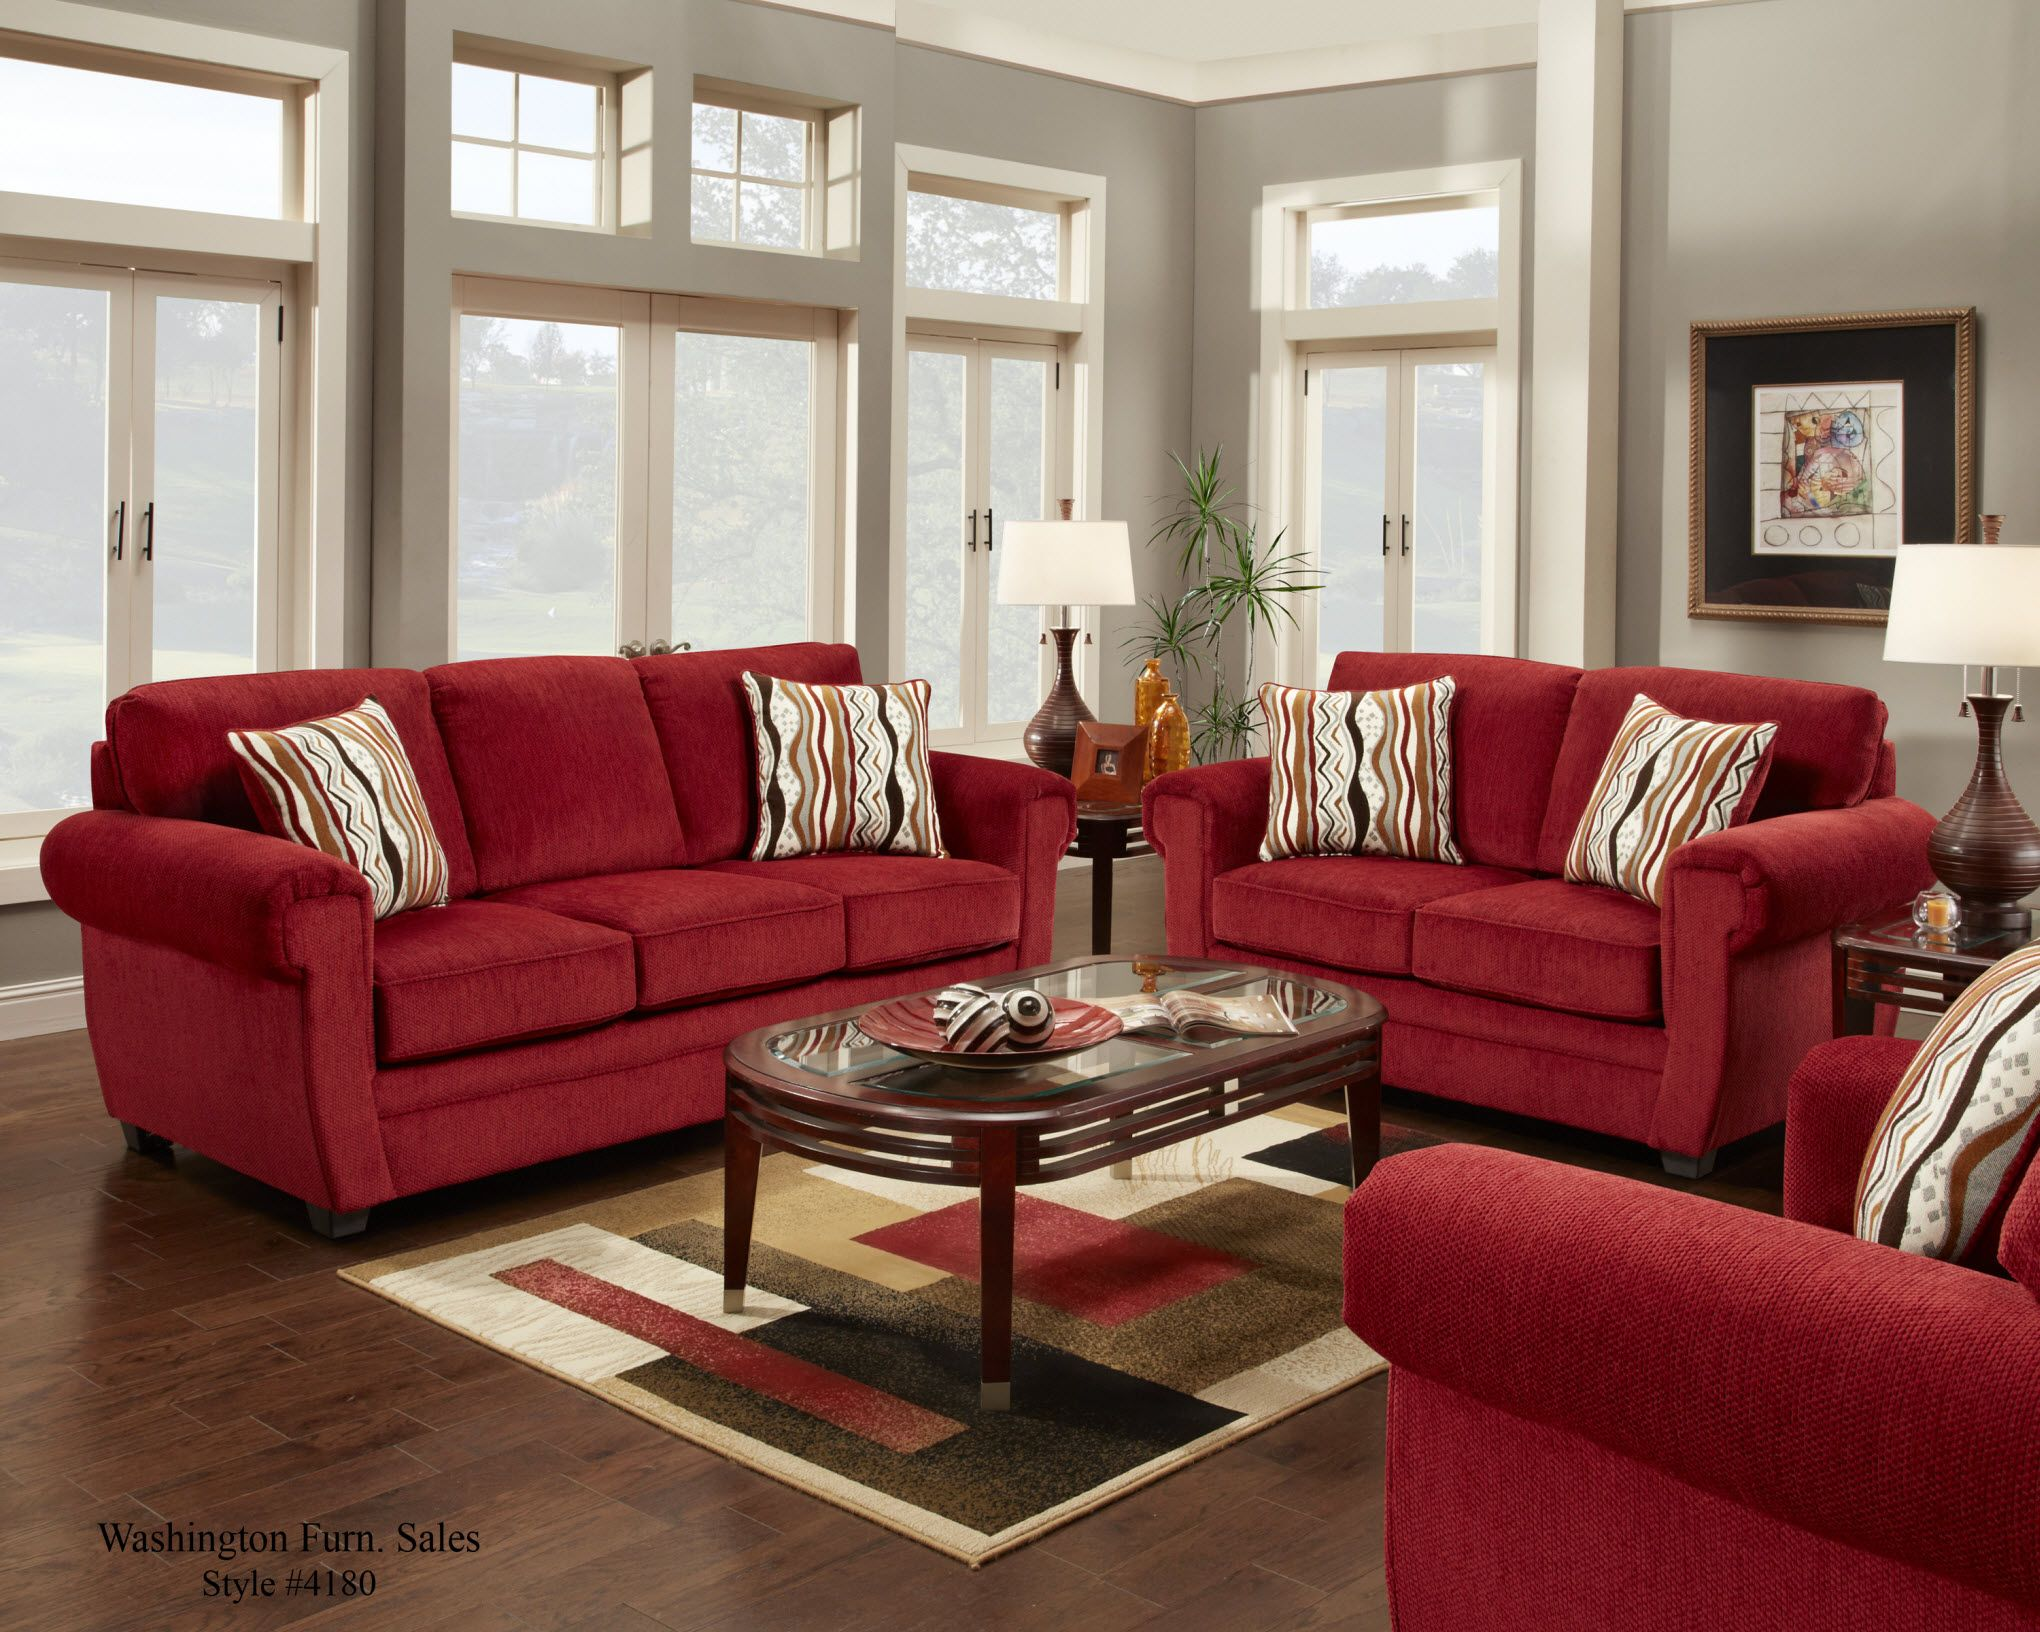 Red Sofa Furniture Best Collections Of Sofas And Couches Sofacouchs Com Red Sofa Living Room Red Furniture Living Room Red Couch Living Room